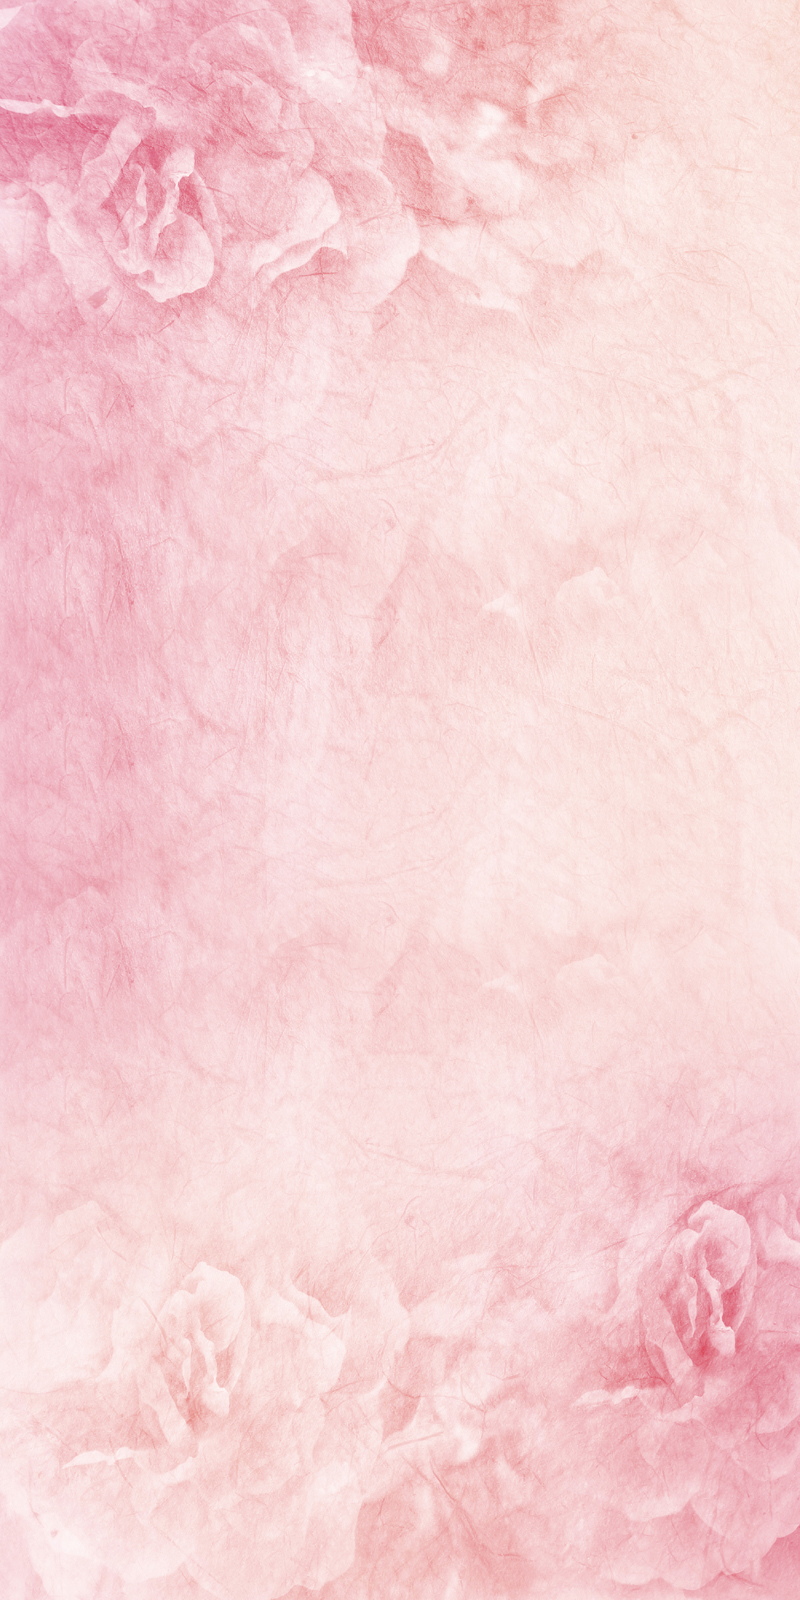 HUAYI art fabric pink floral flowers Photography Backdrop Newborn background Photo prop XT 5153